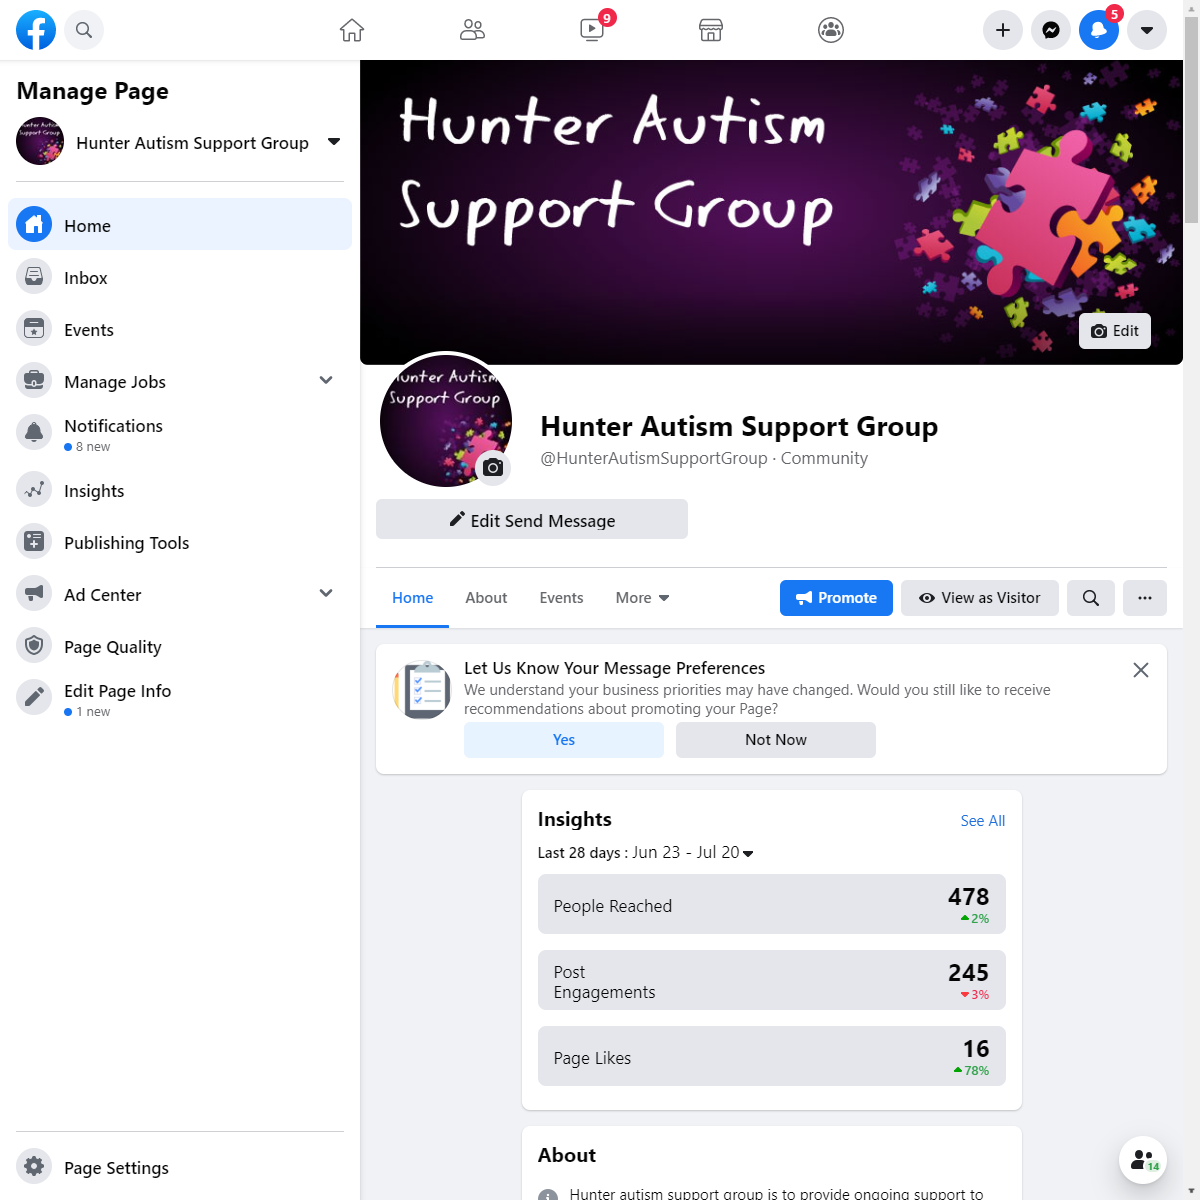 Hunter Autism Support Group Social Media Hub